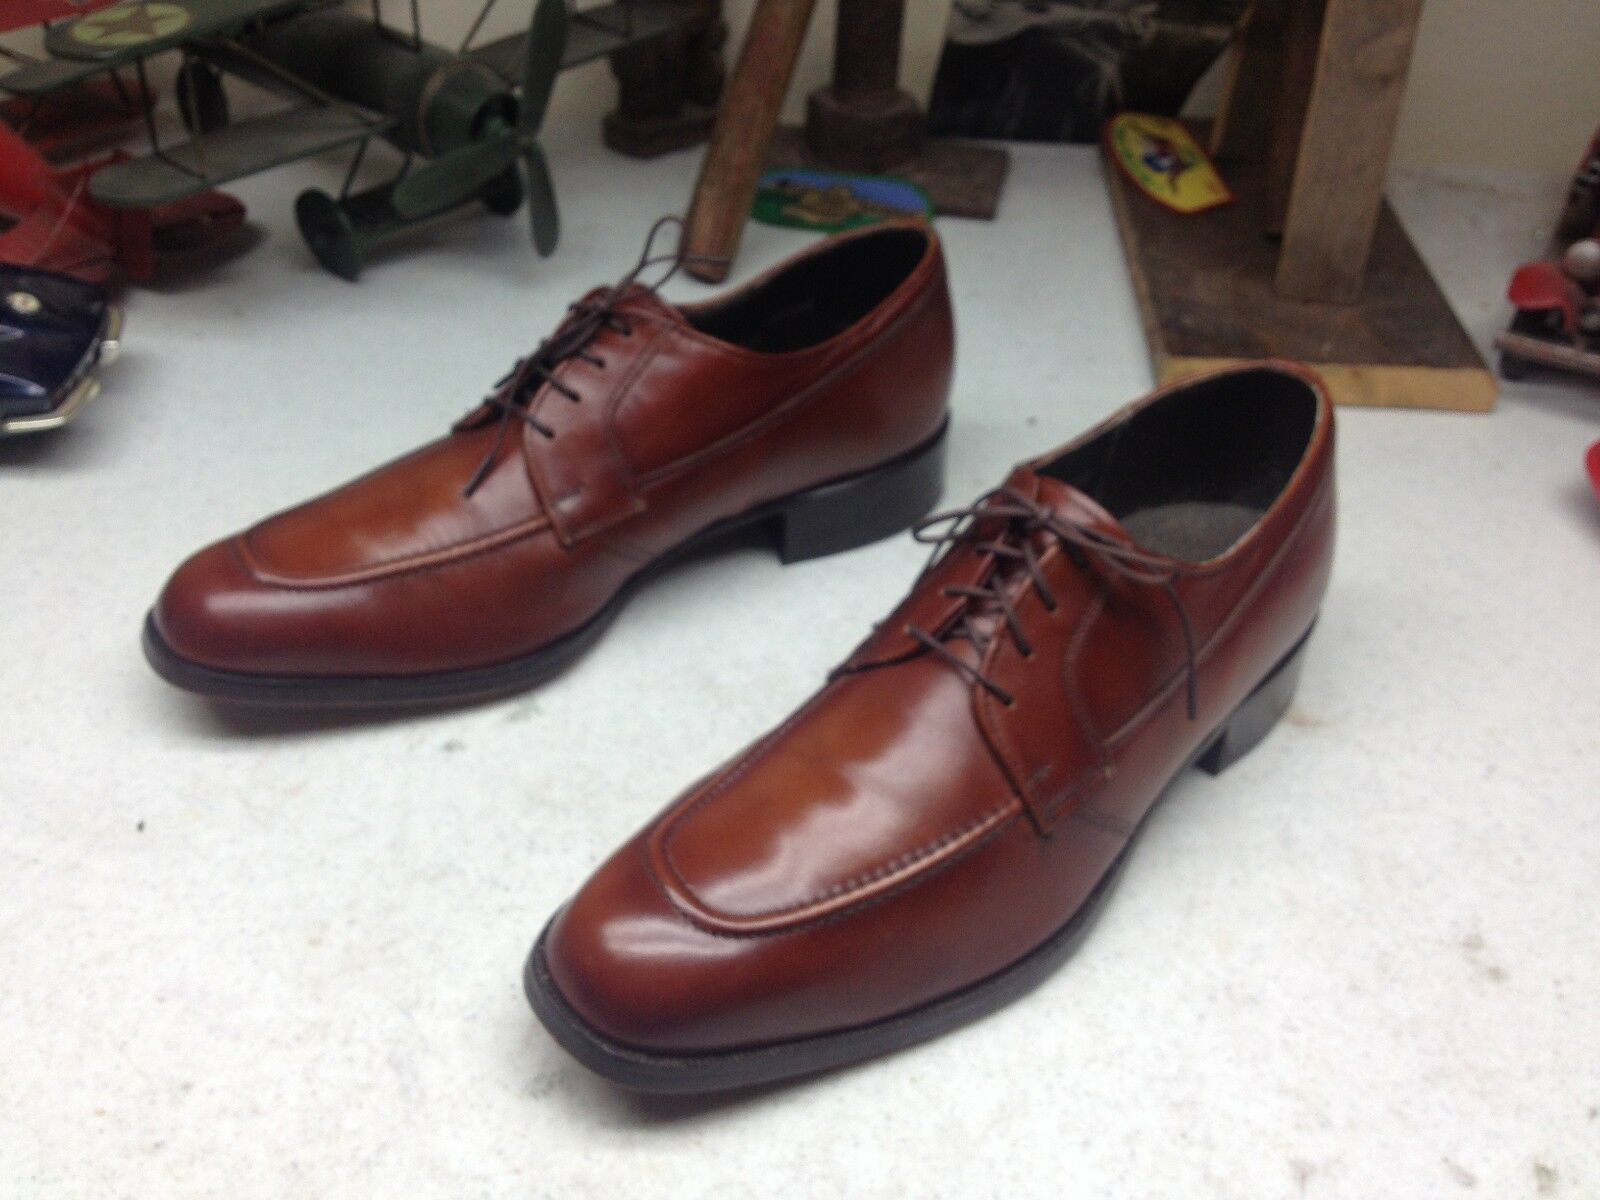 MADE IN  A COGNAC BROWN JARMAN LACE UP SQUARE TOE B INESS POWER OXFORDS 9.5 C